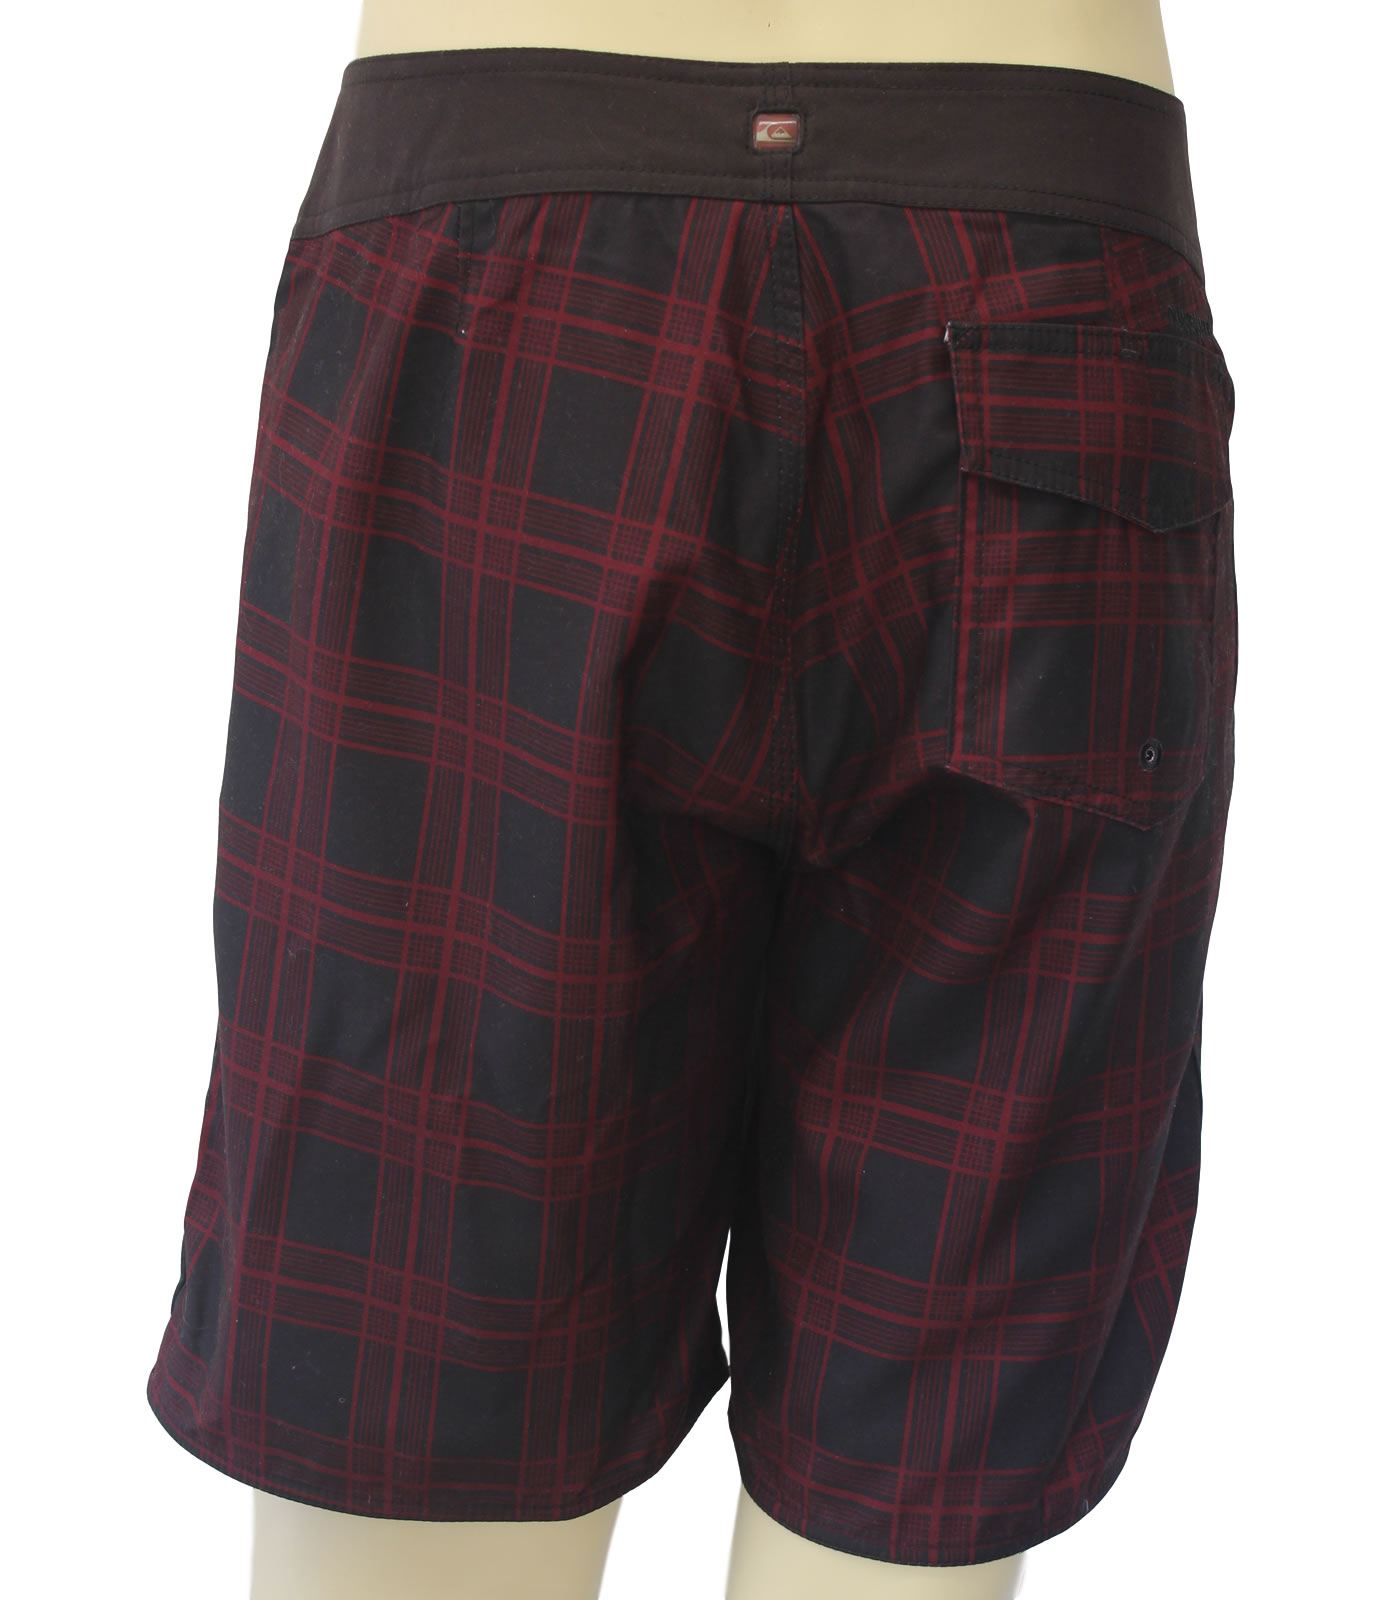 Men Authentic Quiksilver Board Shorts Boardshort Boardies Surf 30 32 Mens Original Size Guide Buy Now The New Blue Check Or Red Boardshorts These Are Made Of 100 Polyester For A Quick Dry